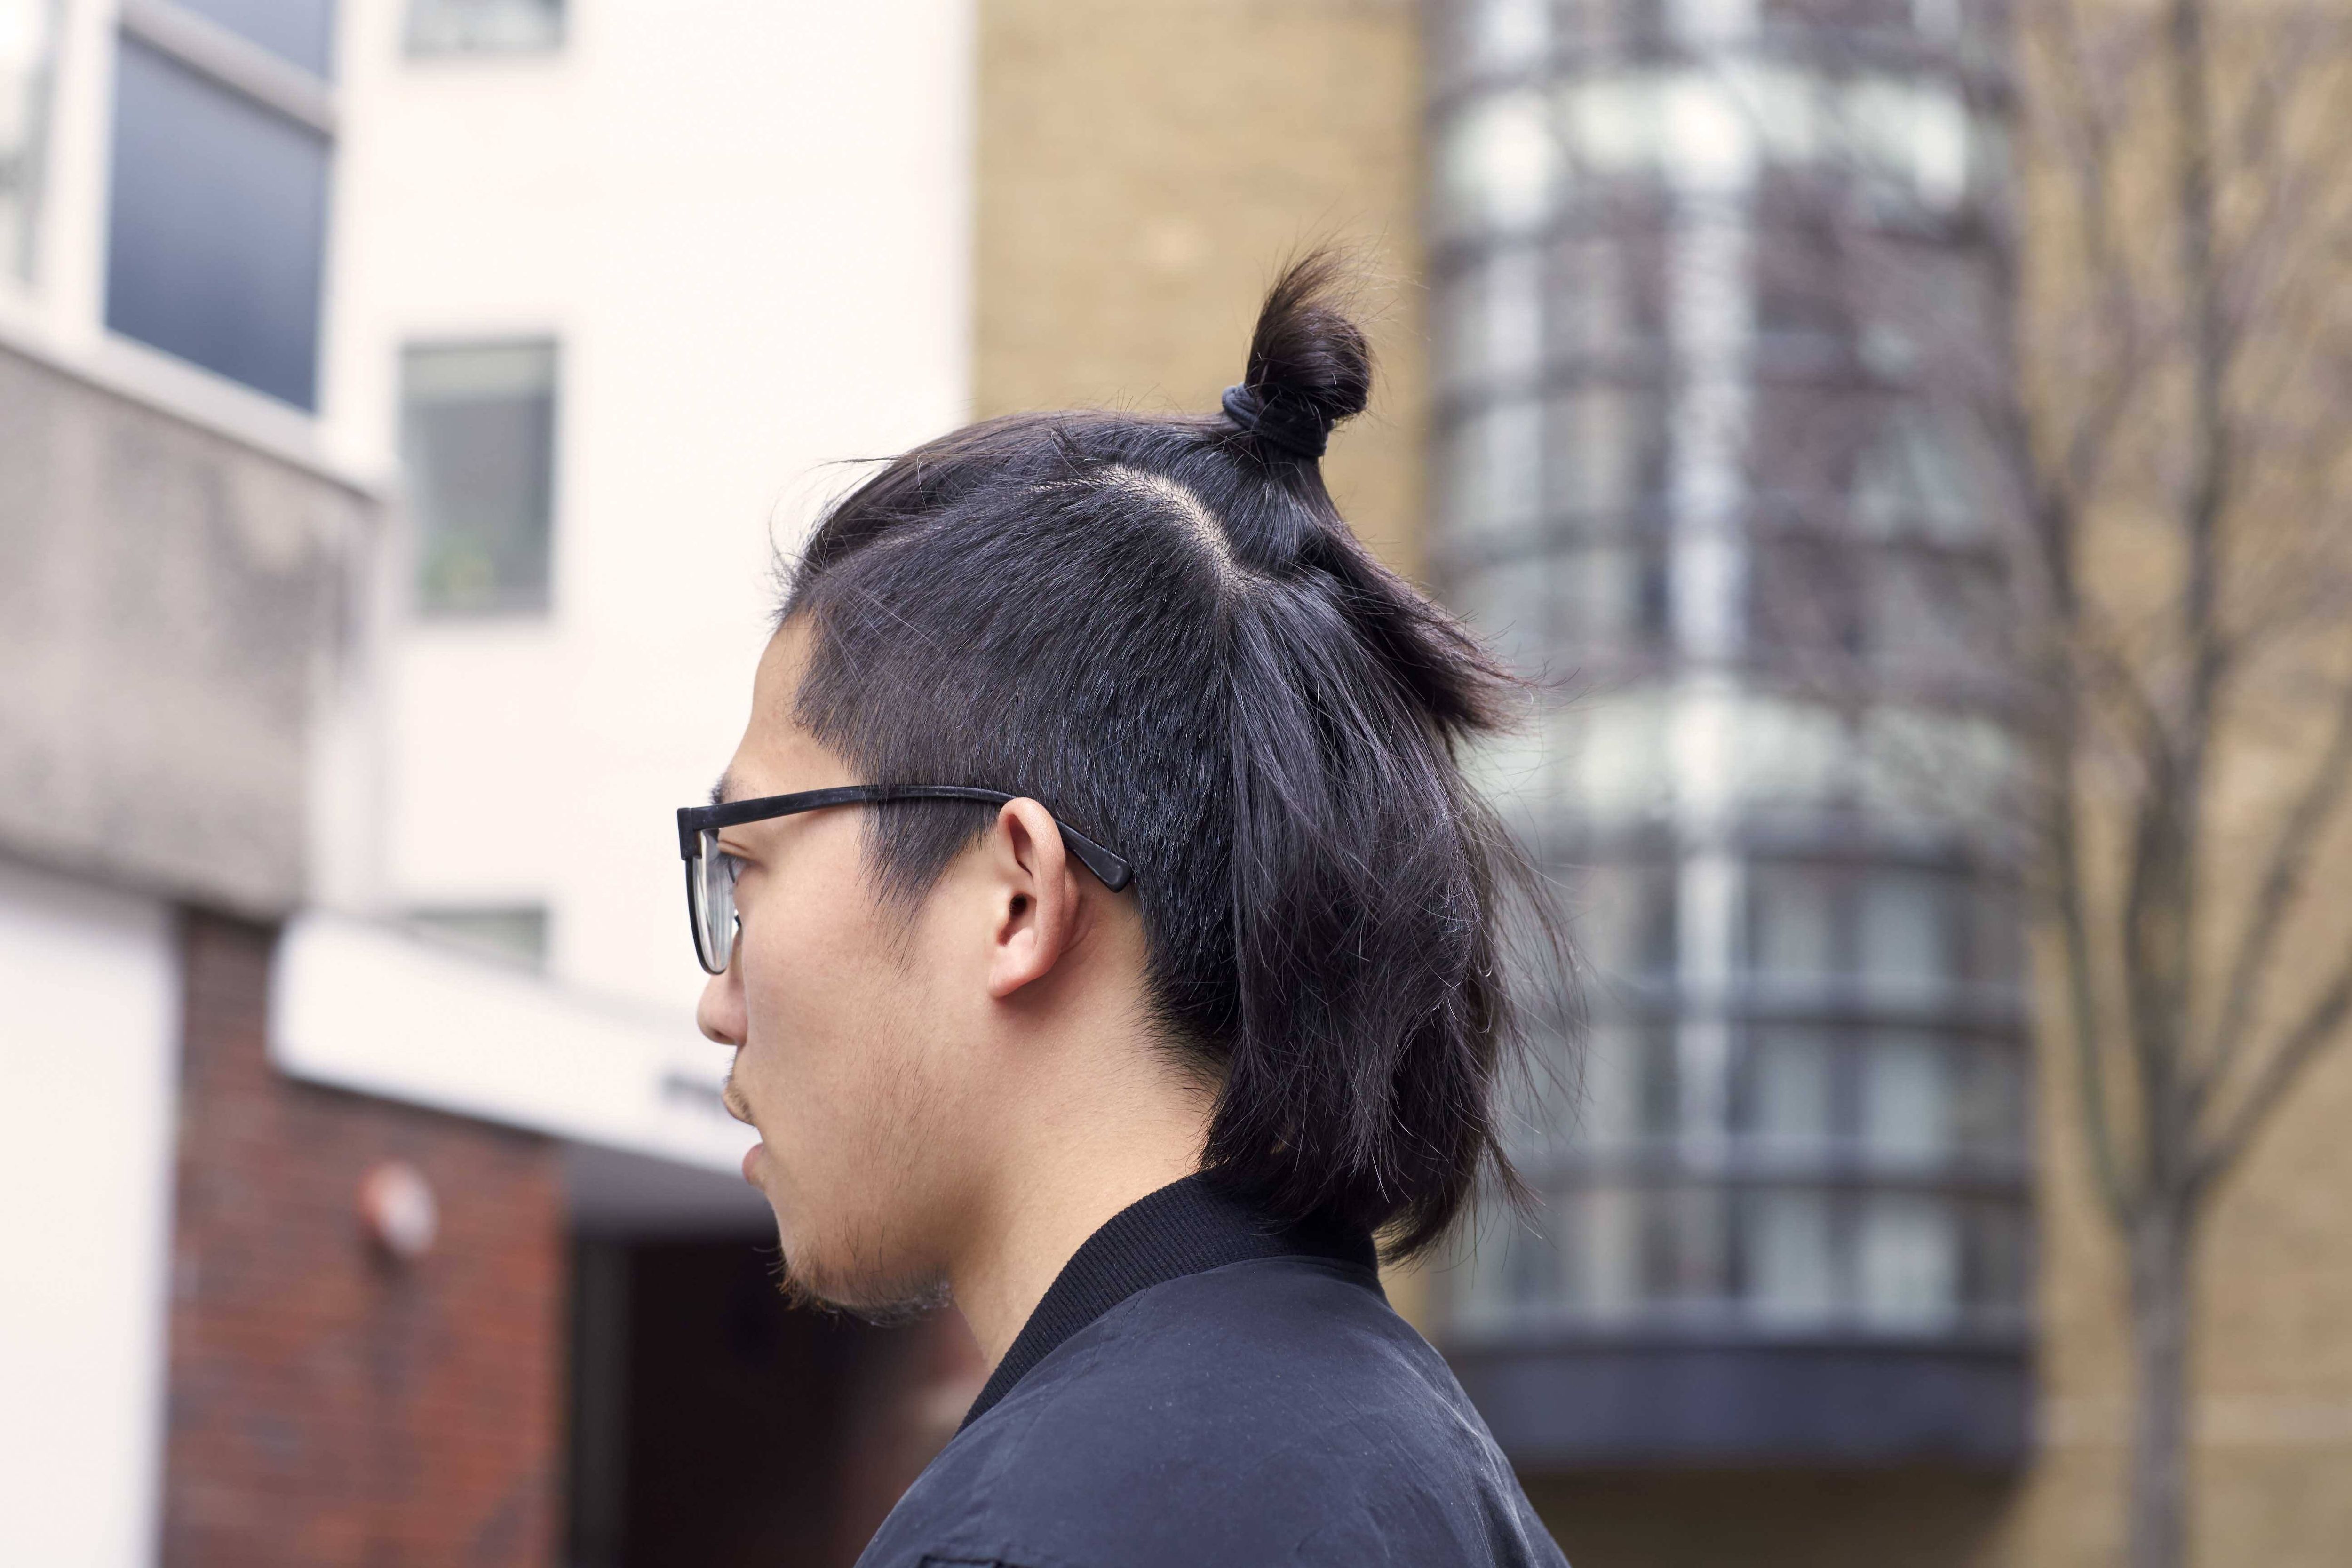 Asian mohawk hairstyle has nice